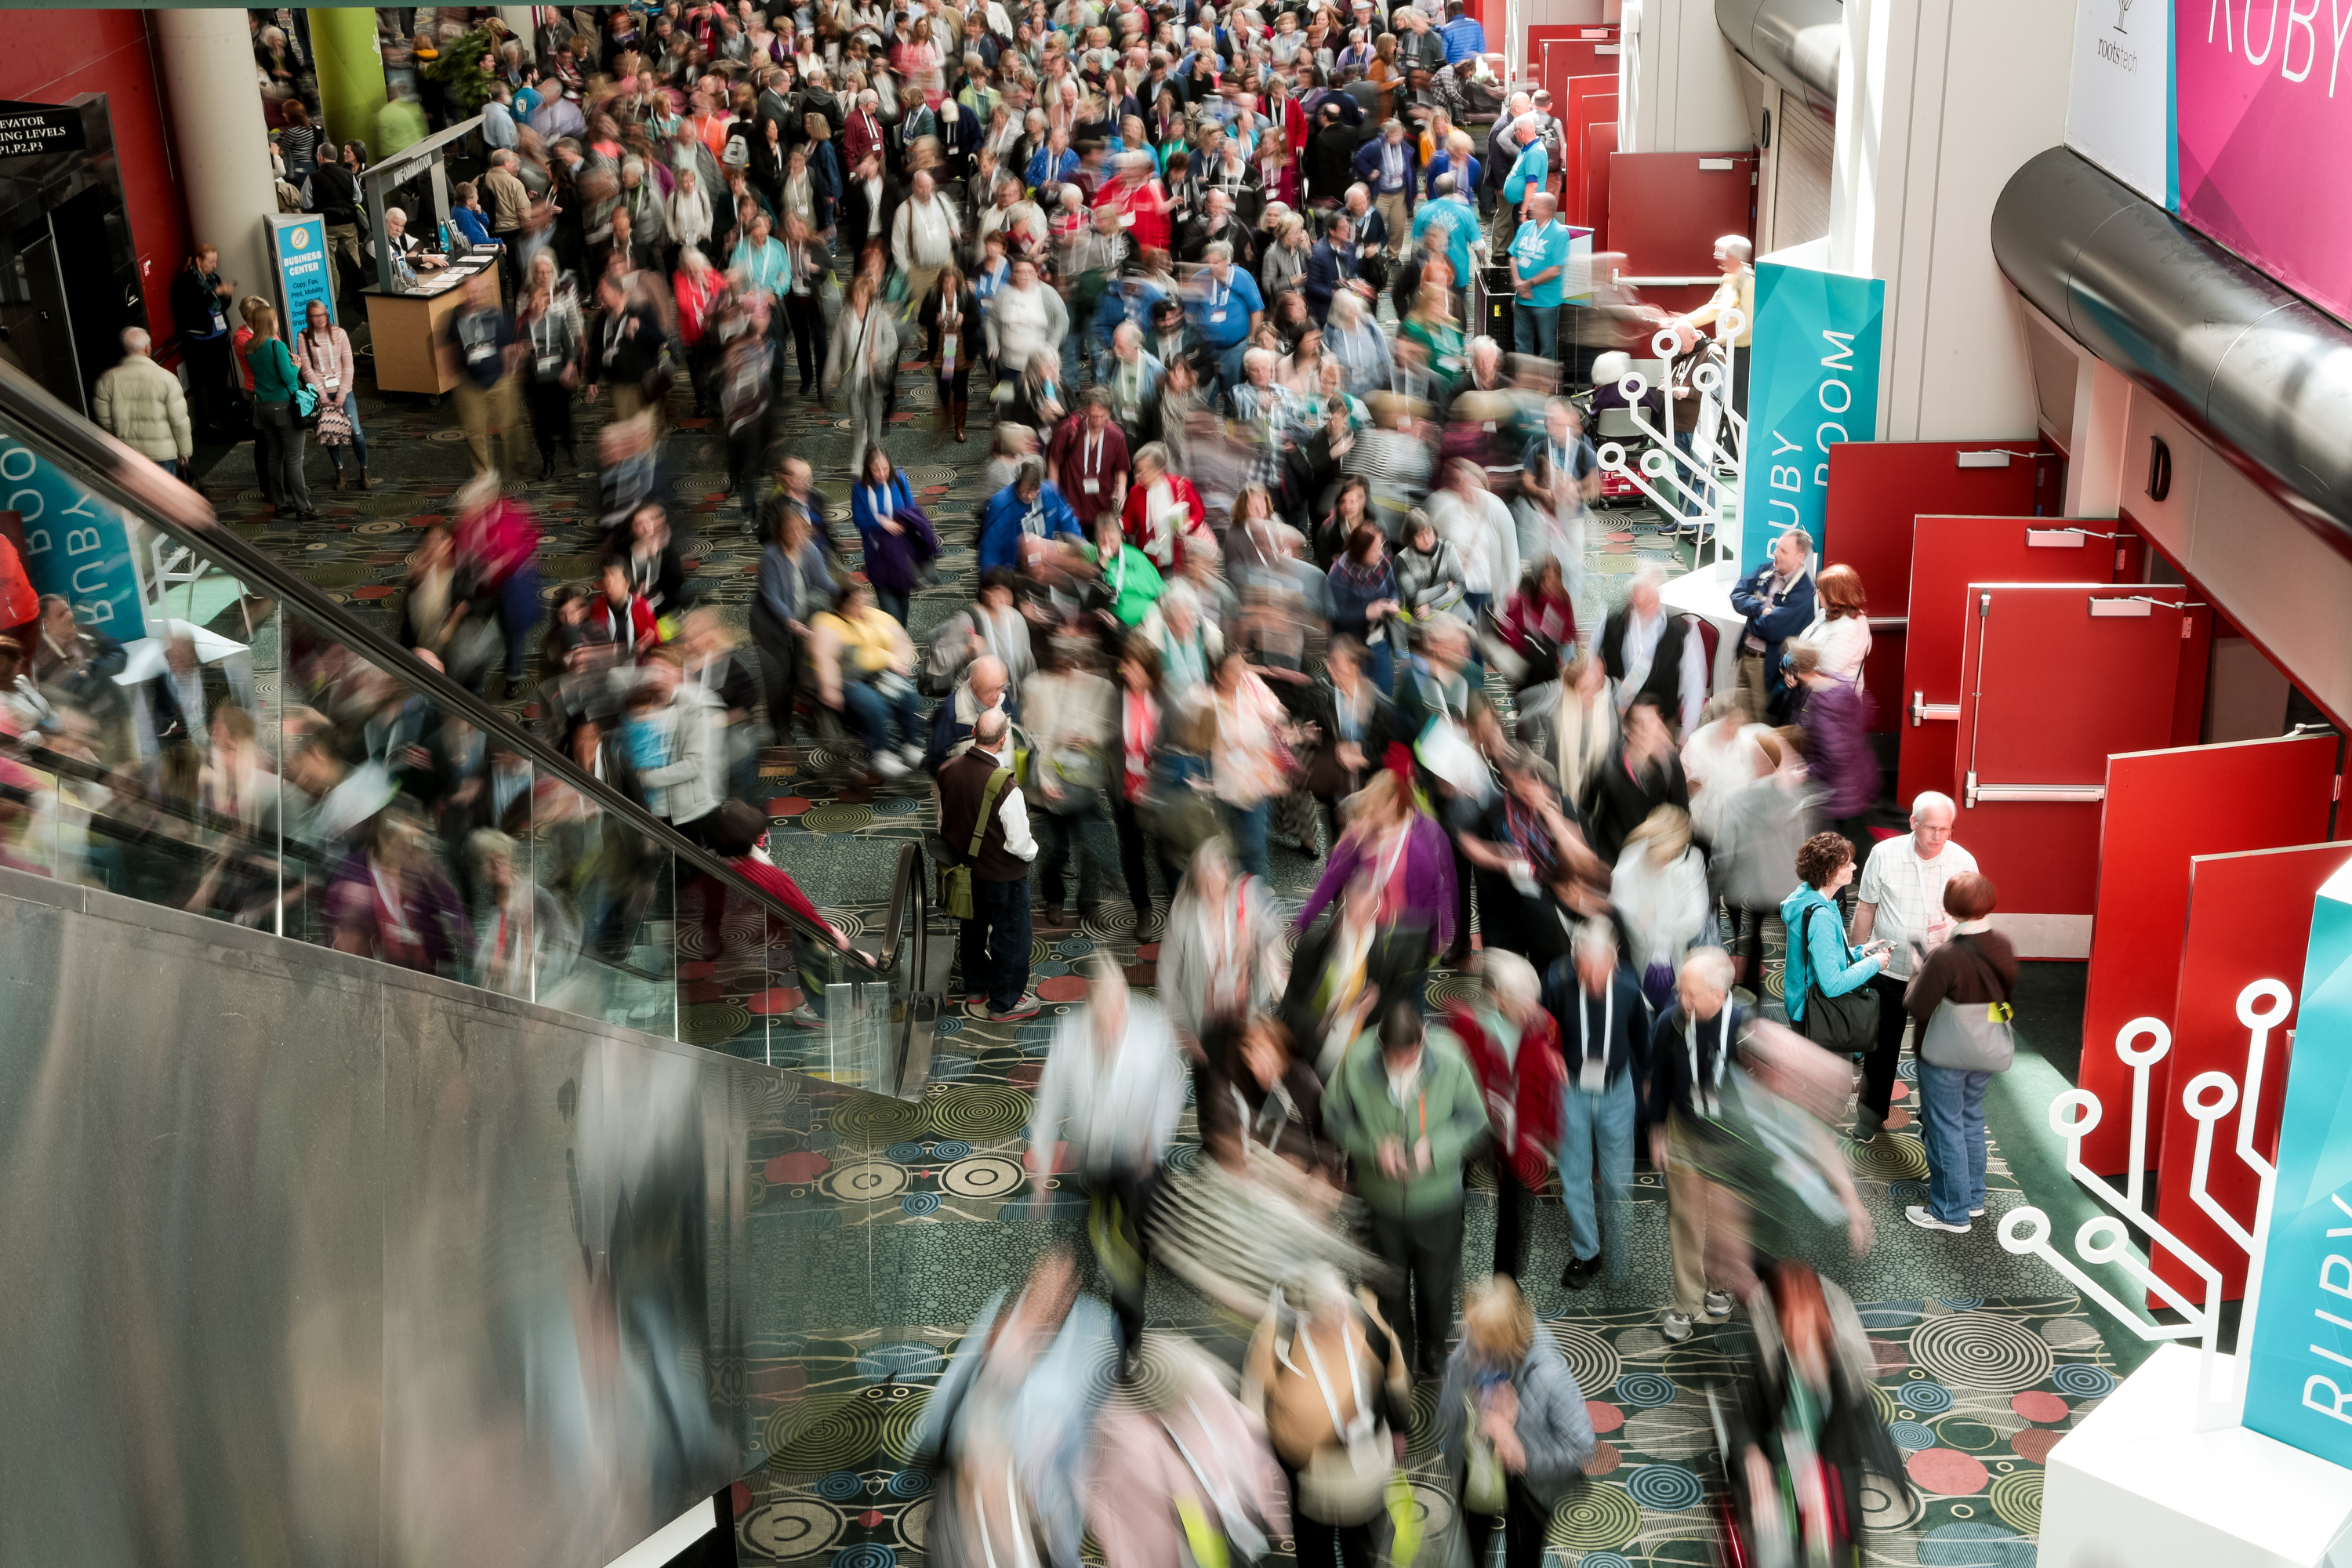 Attendees exit the Main Stage area after the keynote address at the RootsTech conference at the Salt Palace in Salt Lake City on Friday, March 1, 2019.